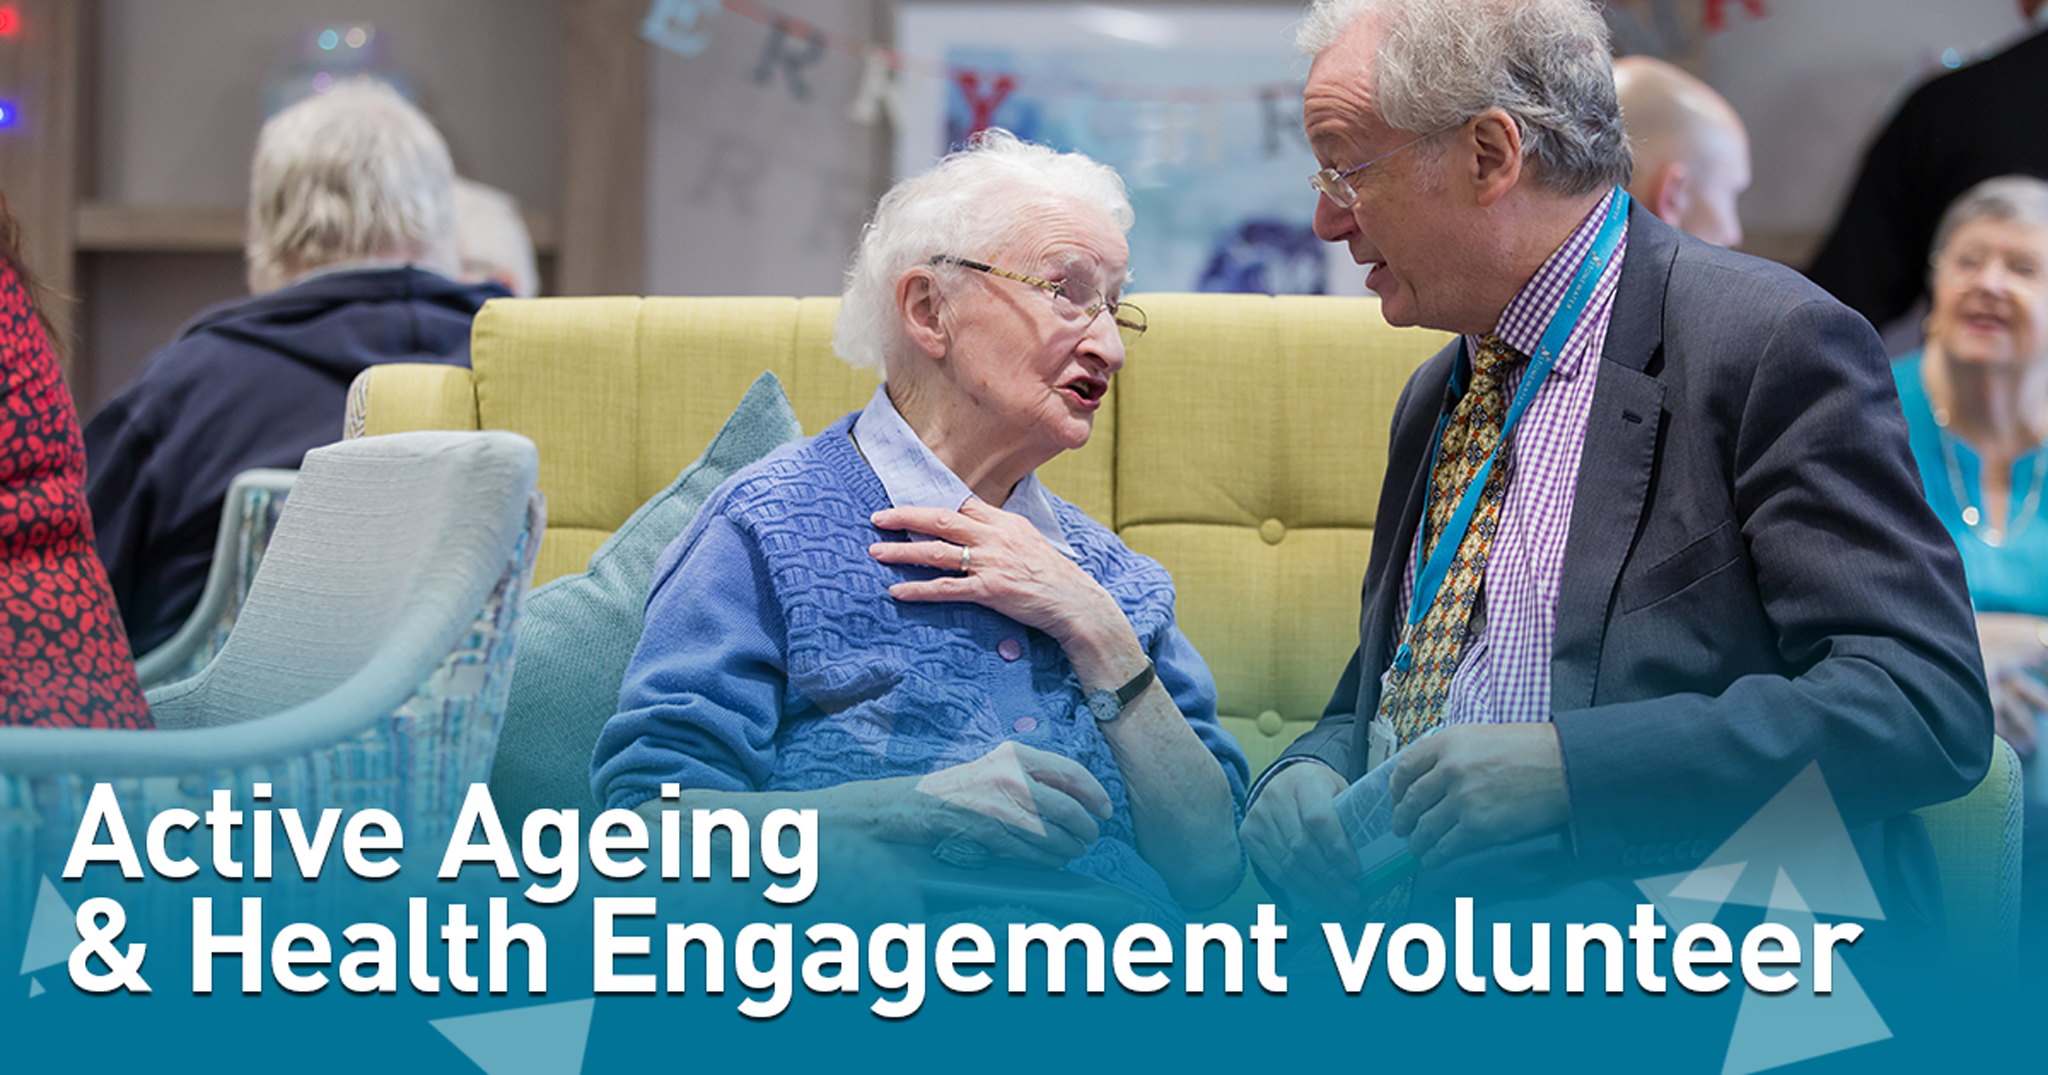 Active Ageing & Health Engagement volunteer